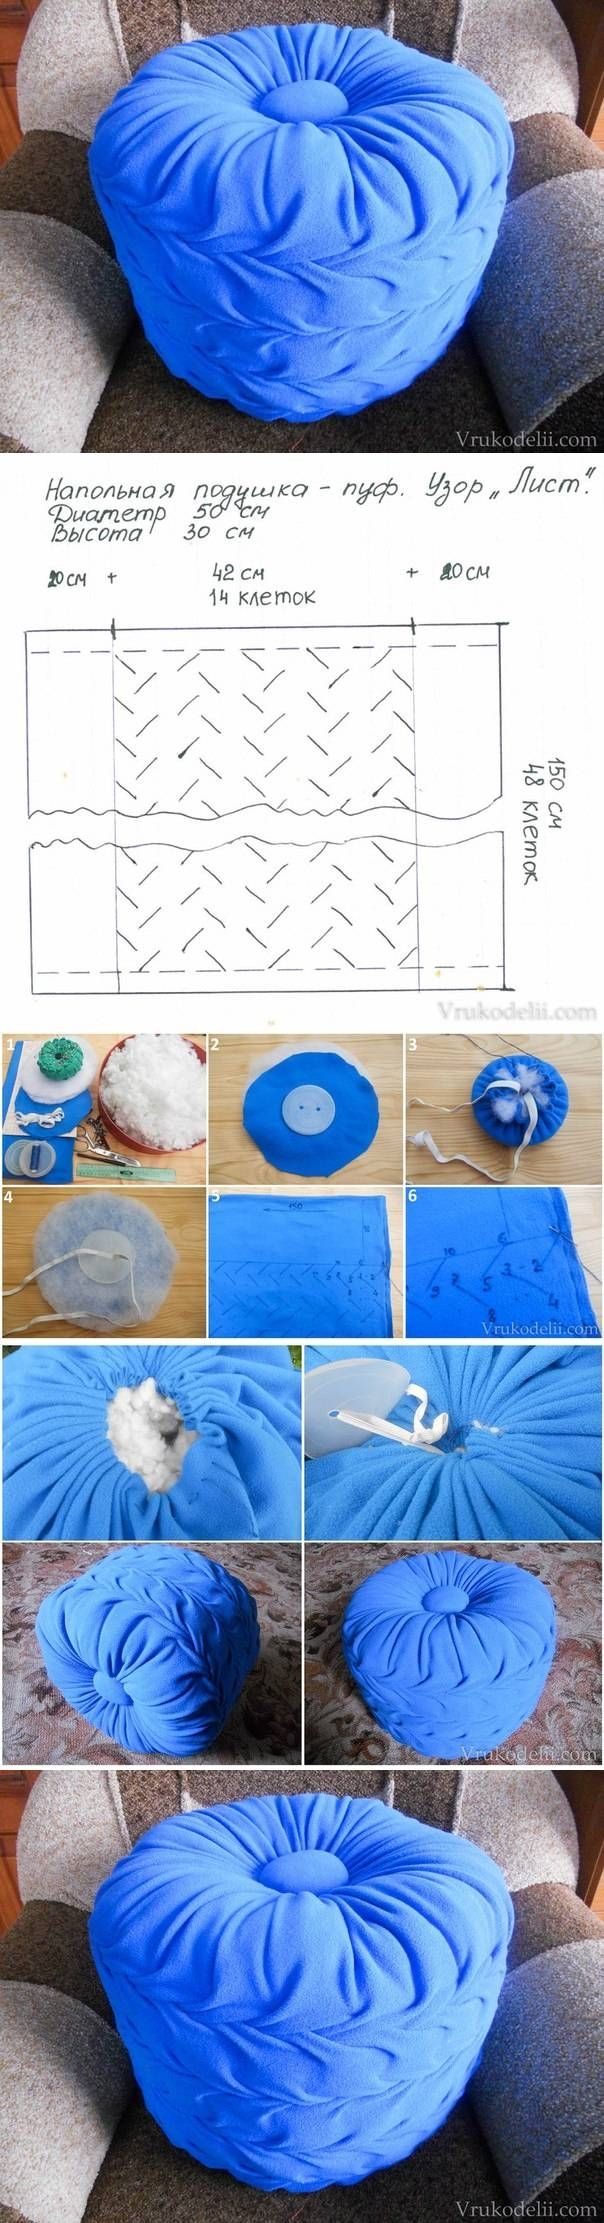 122 best diy home decor images on pinterest home projects and wood